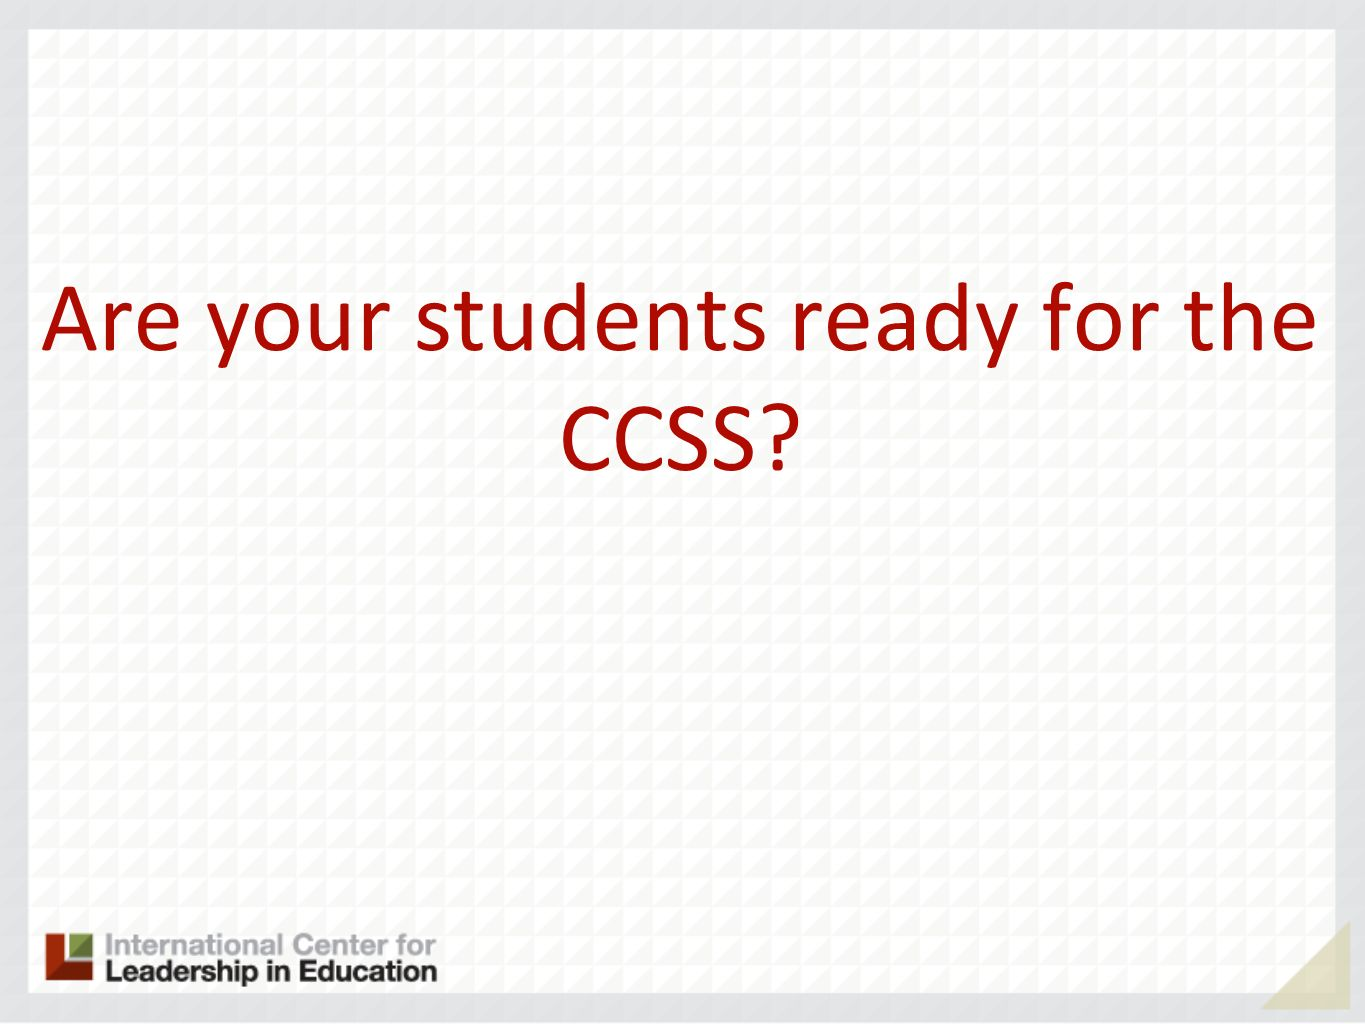 Are your students ready for the CCSS